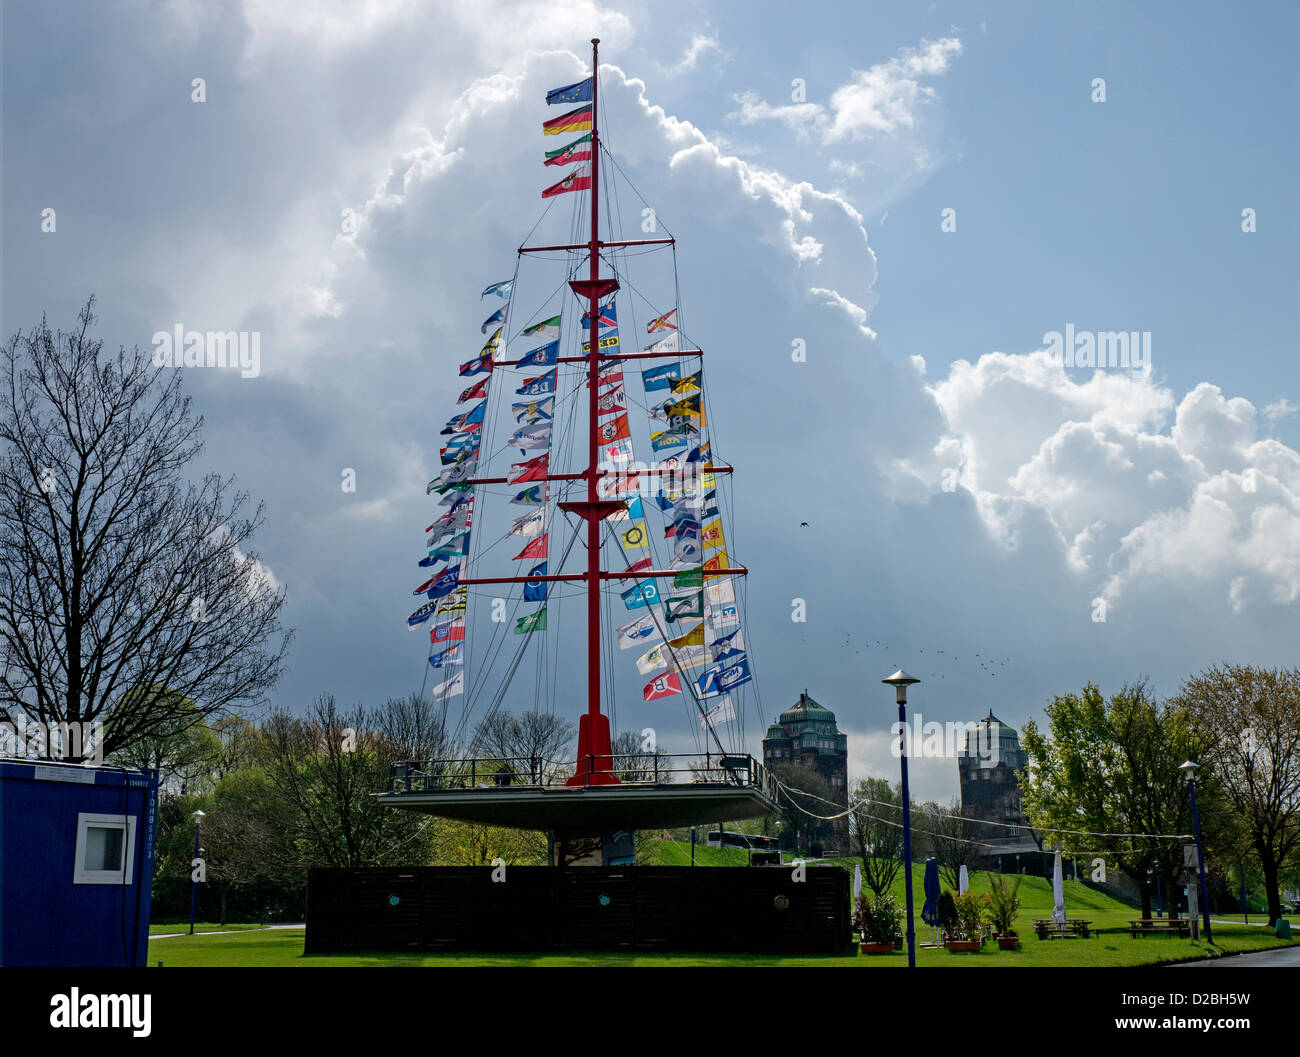 Flagpole with company flags on Muehlenweide by the river Rhine, Duisburg, Germany - Stock Image